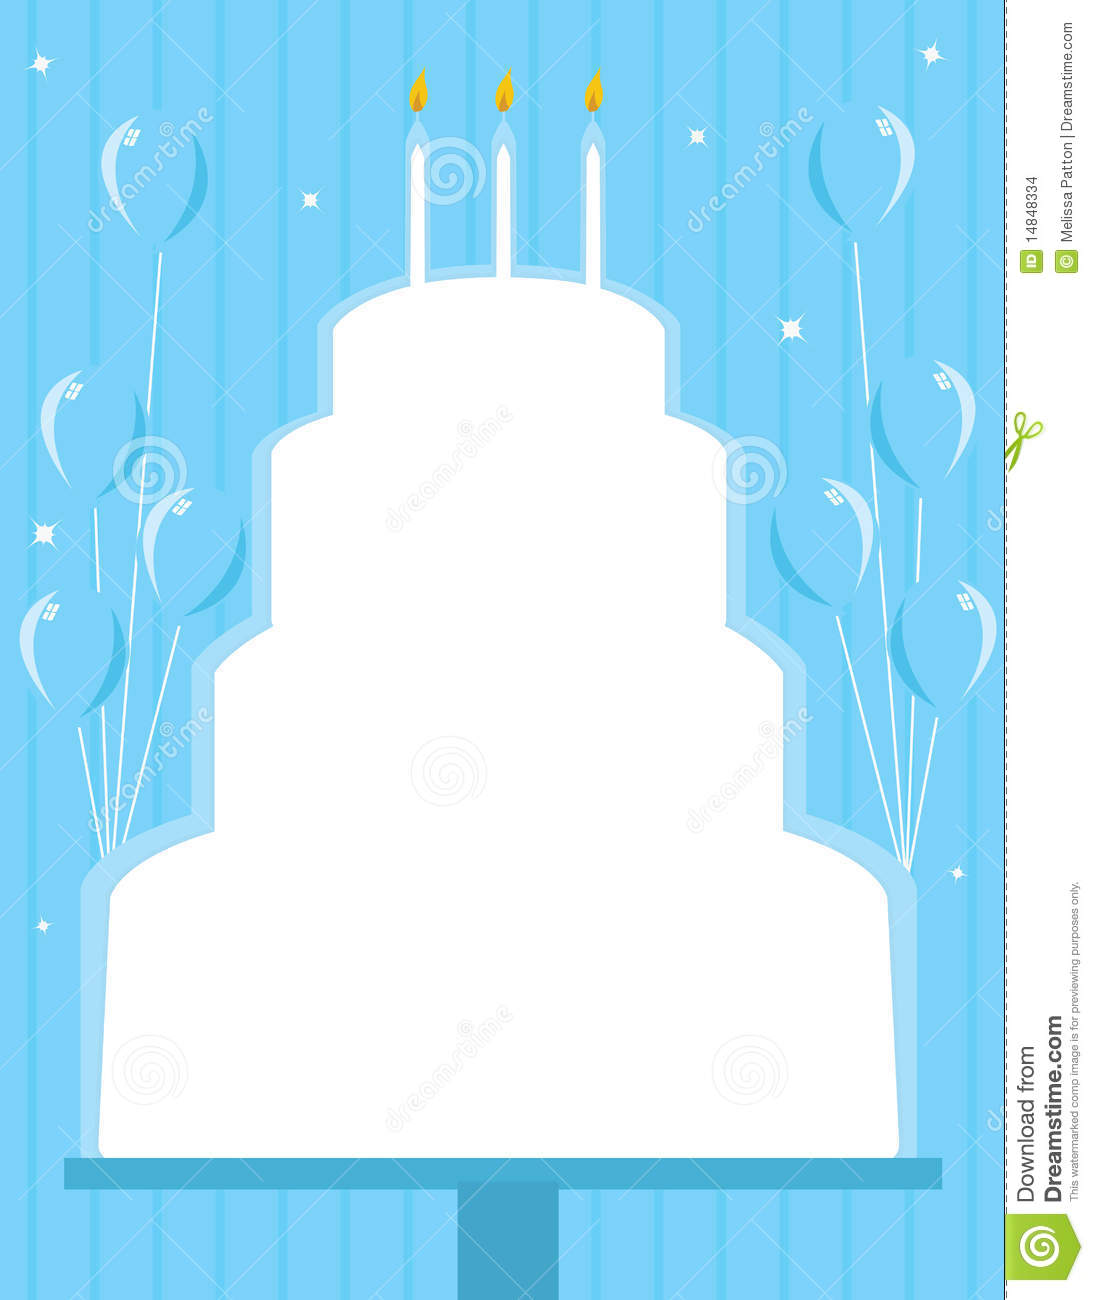 Birthday Cake Frame Background Stock Illustration - Illustration of